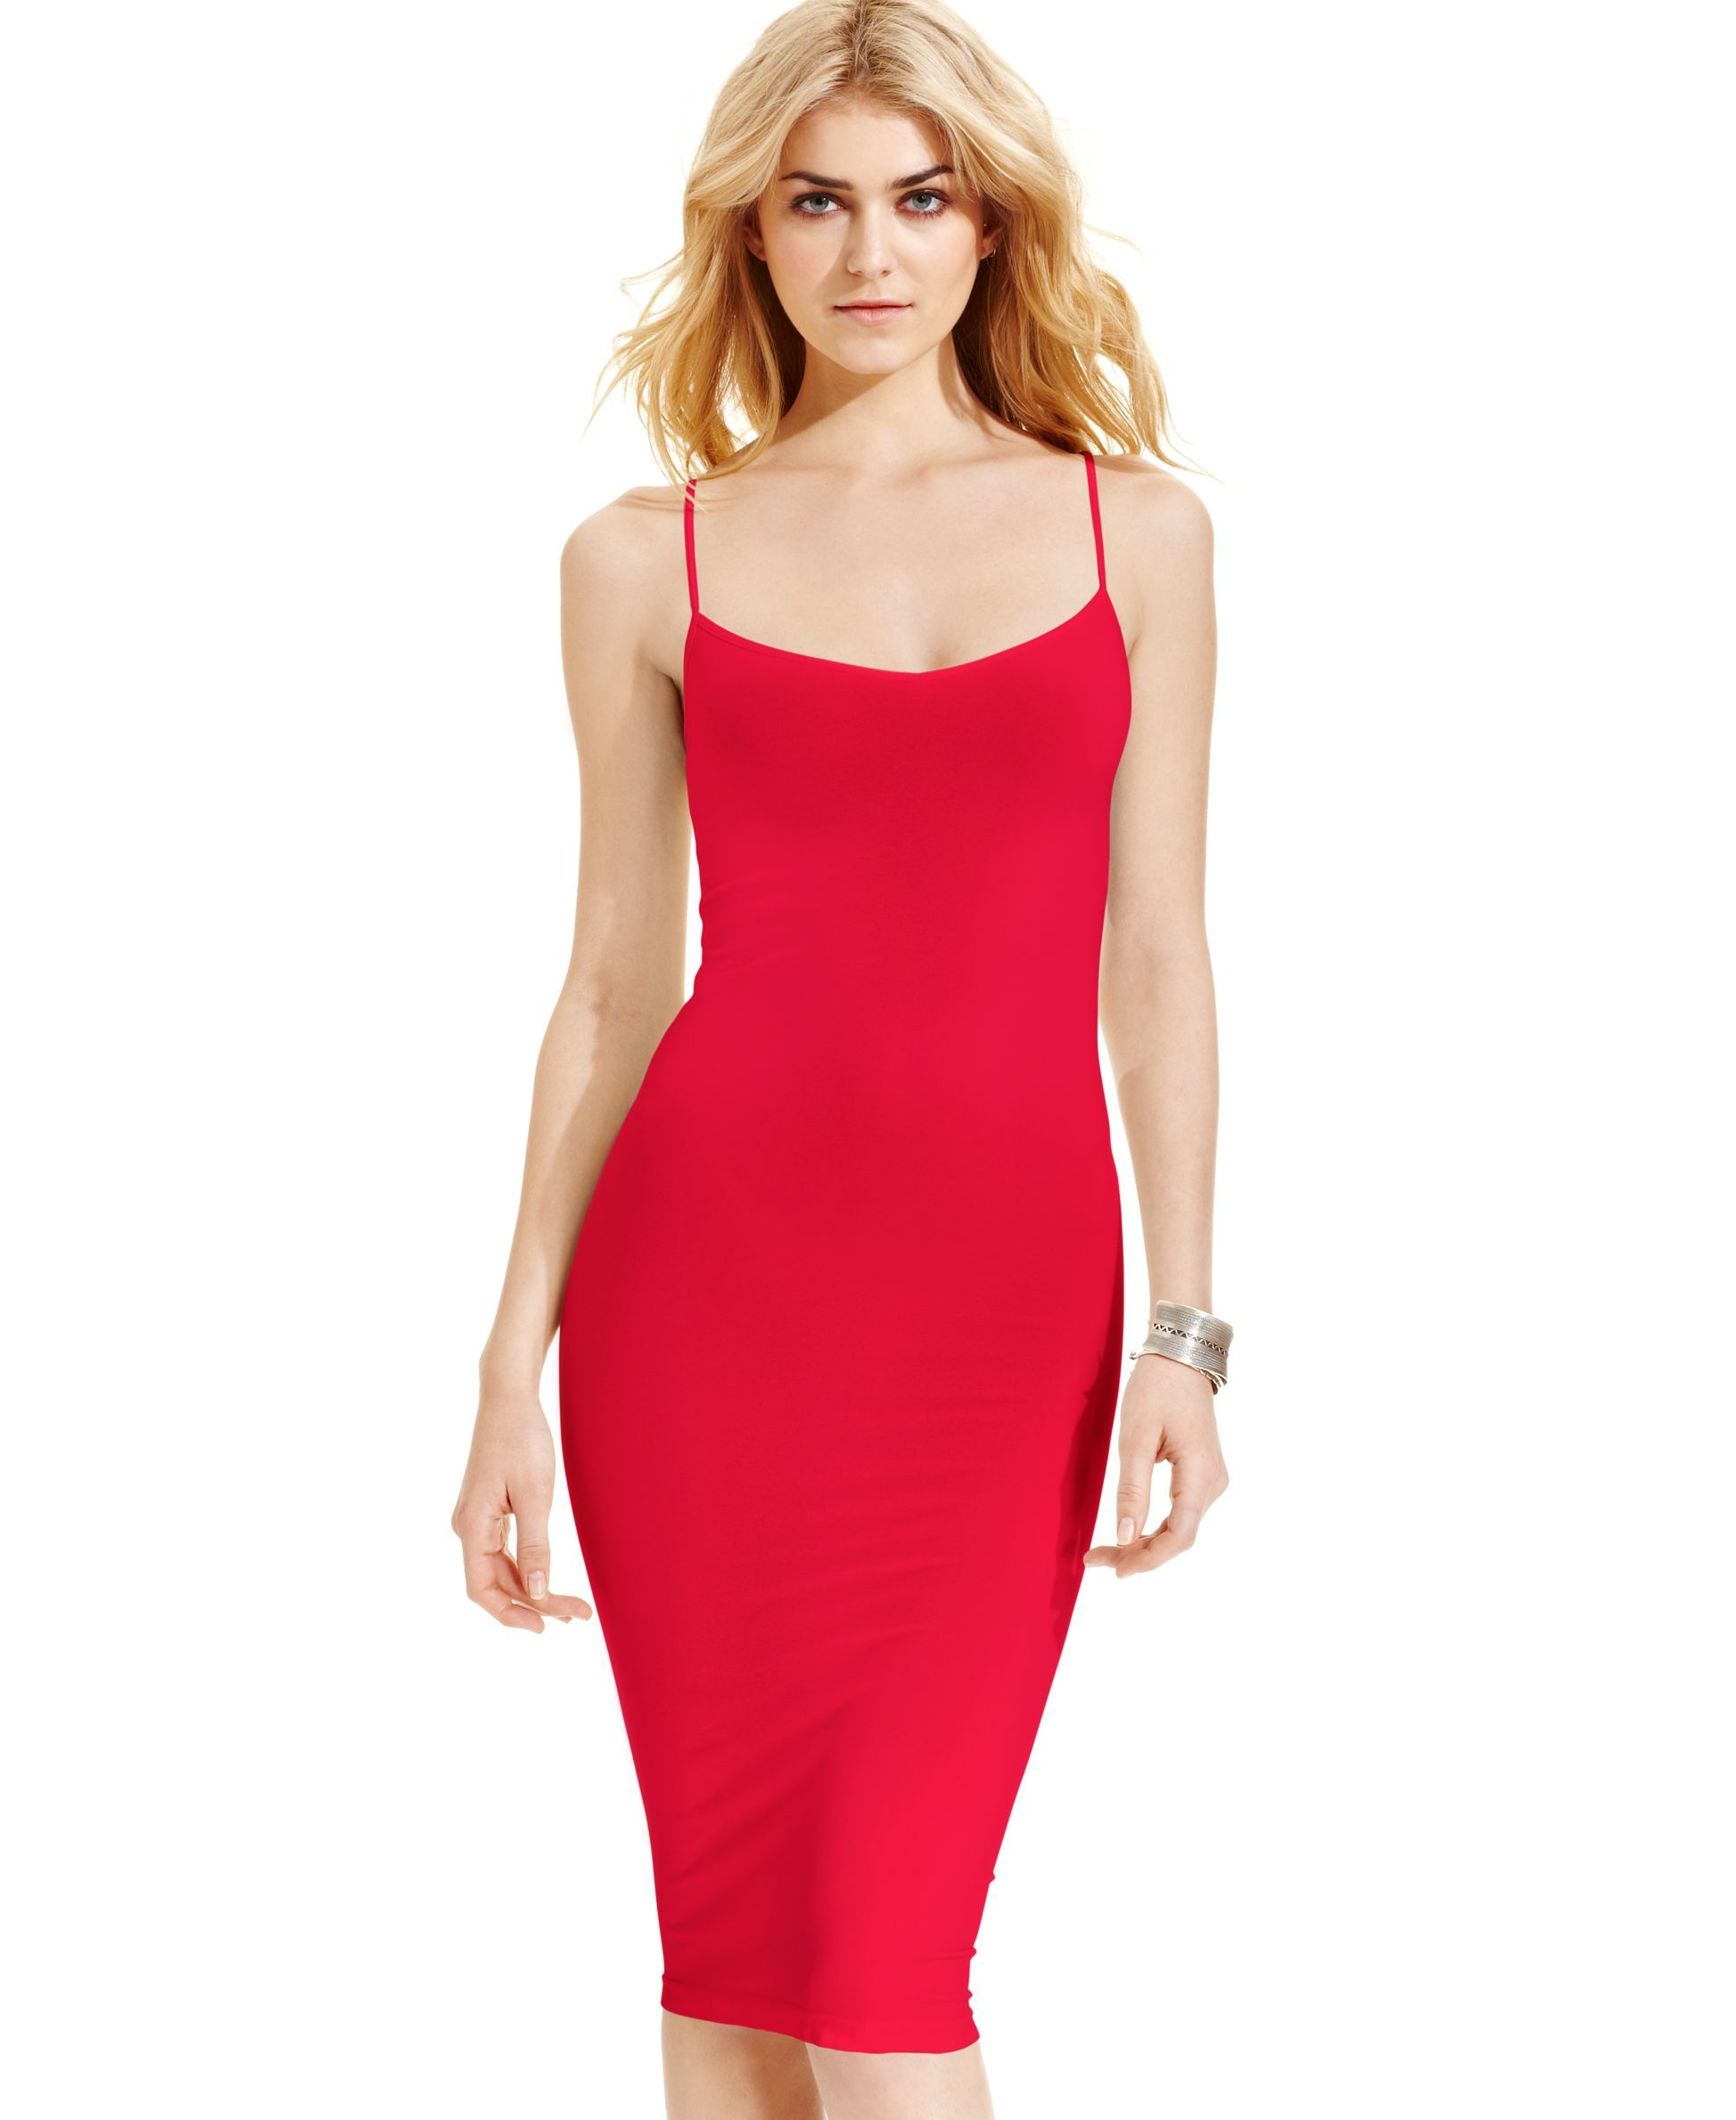 Free people slip dress products pinterest products